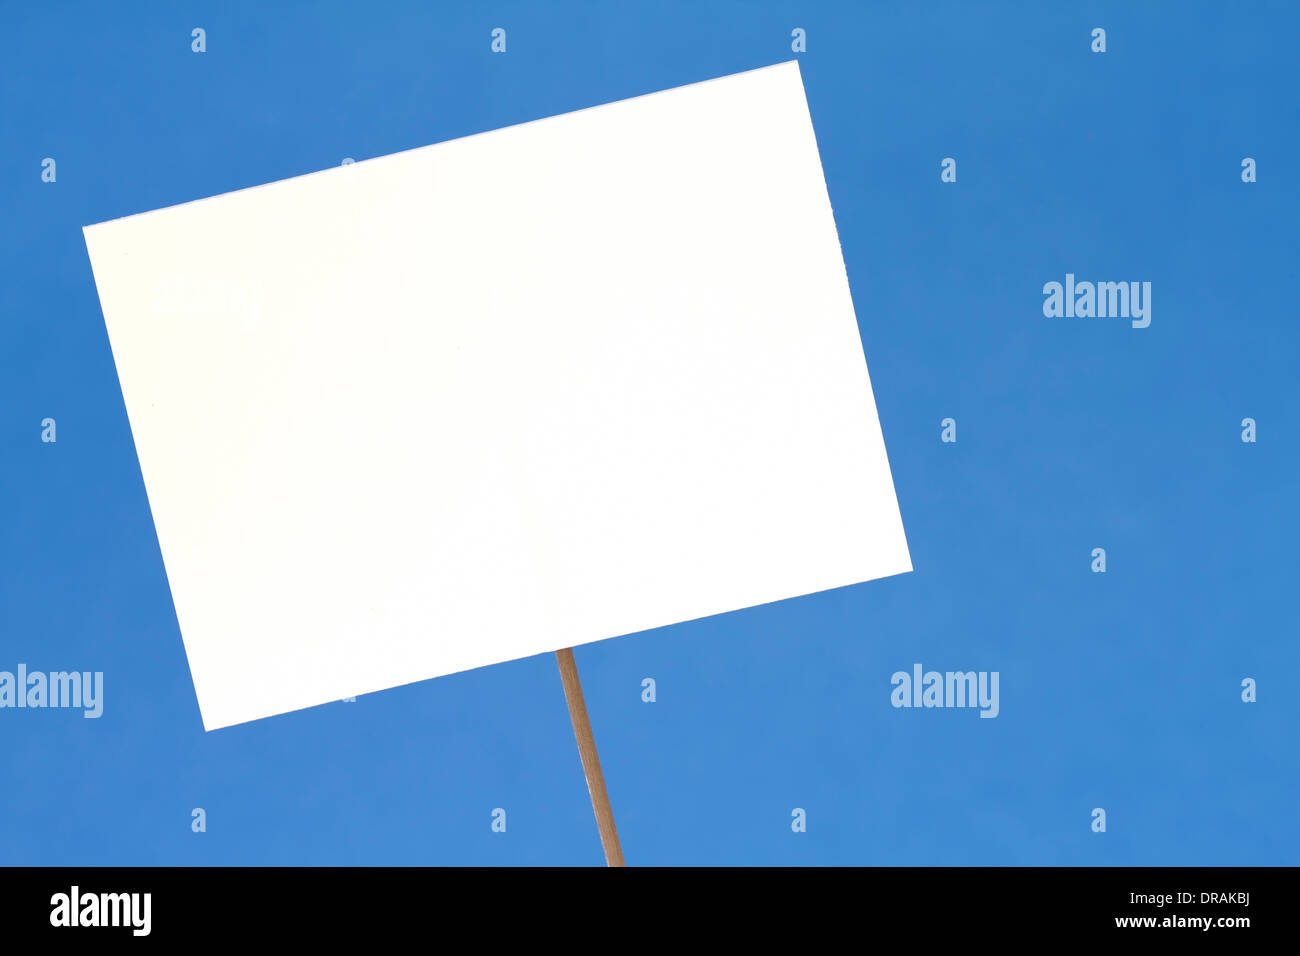 Blank white sign on a blue background - Stock Image